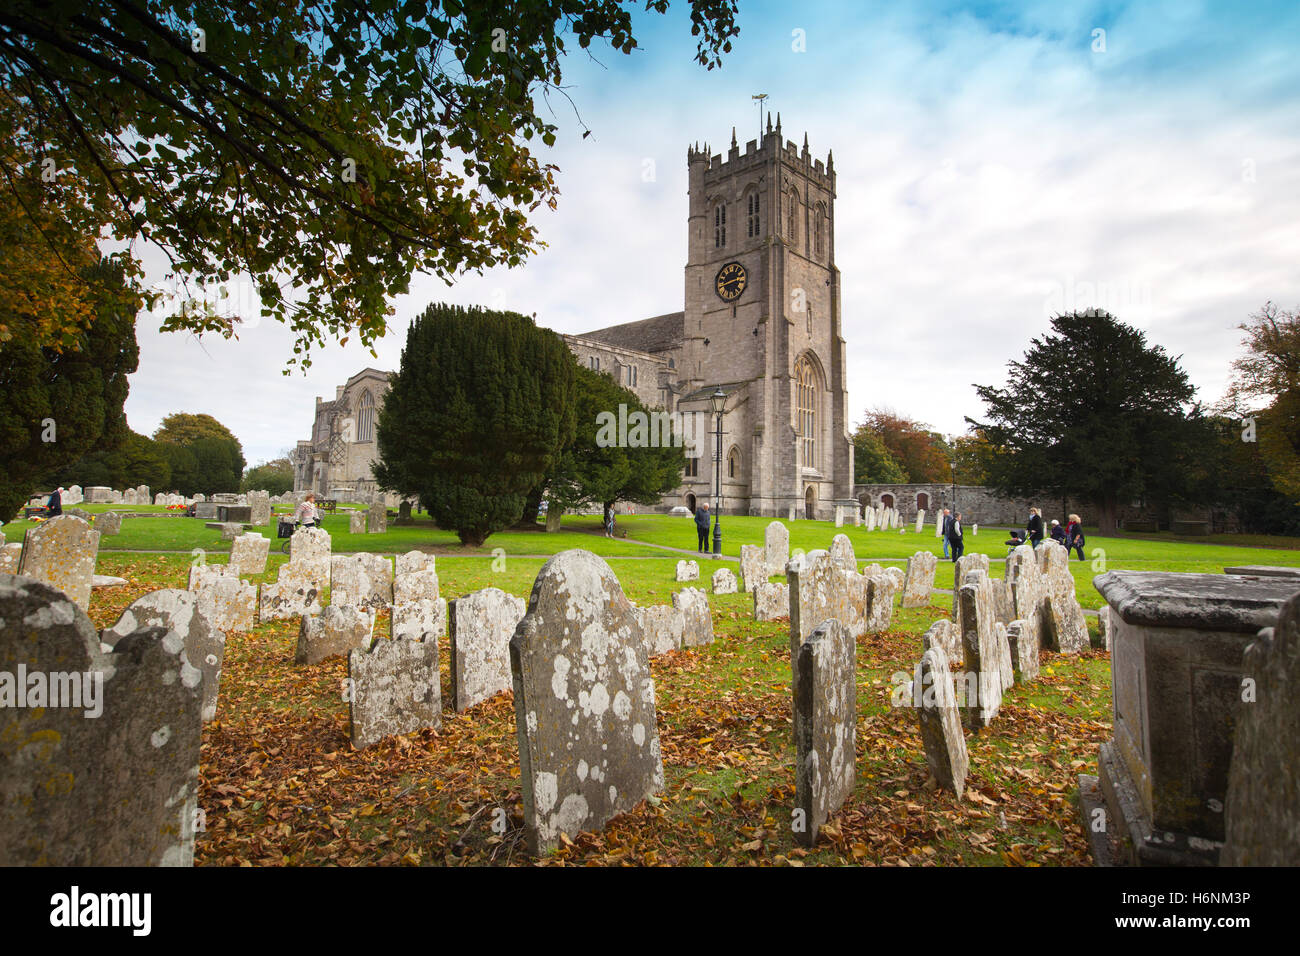 Christchurch Priory Church, built 1904, ecclesiastical church with longest nave in England, Christchurch, Dorset, - Stock Image